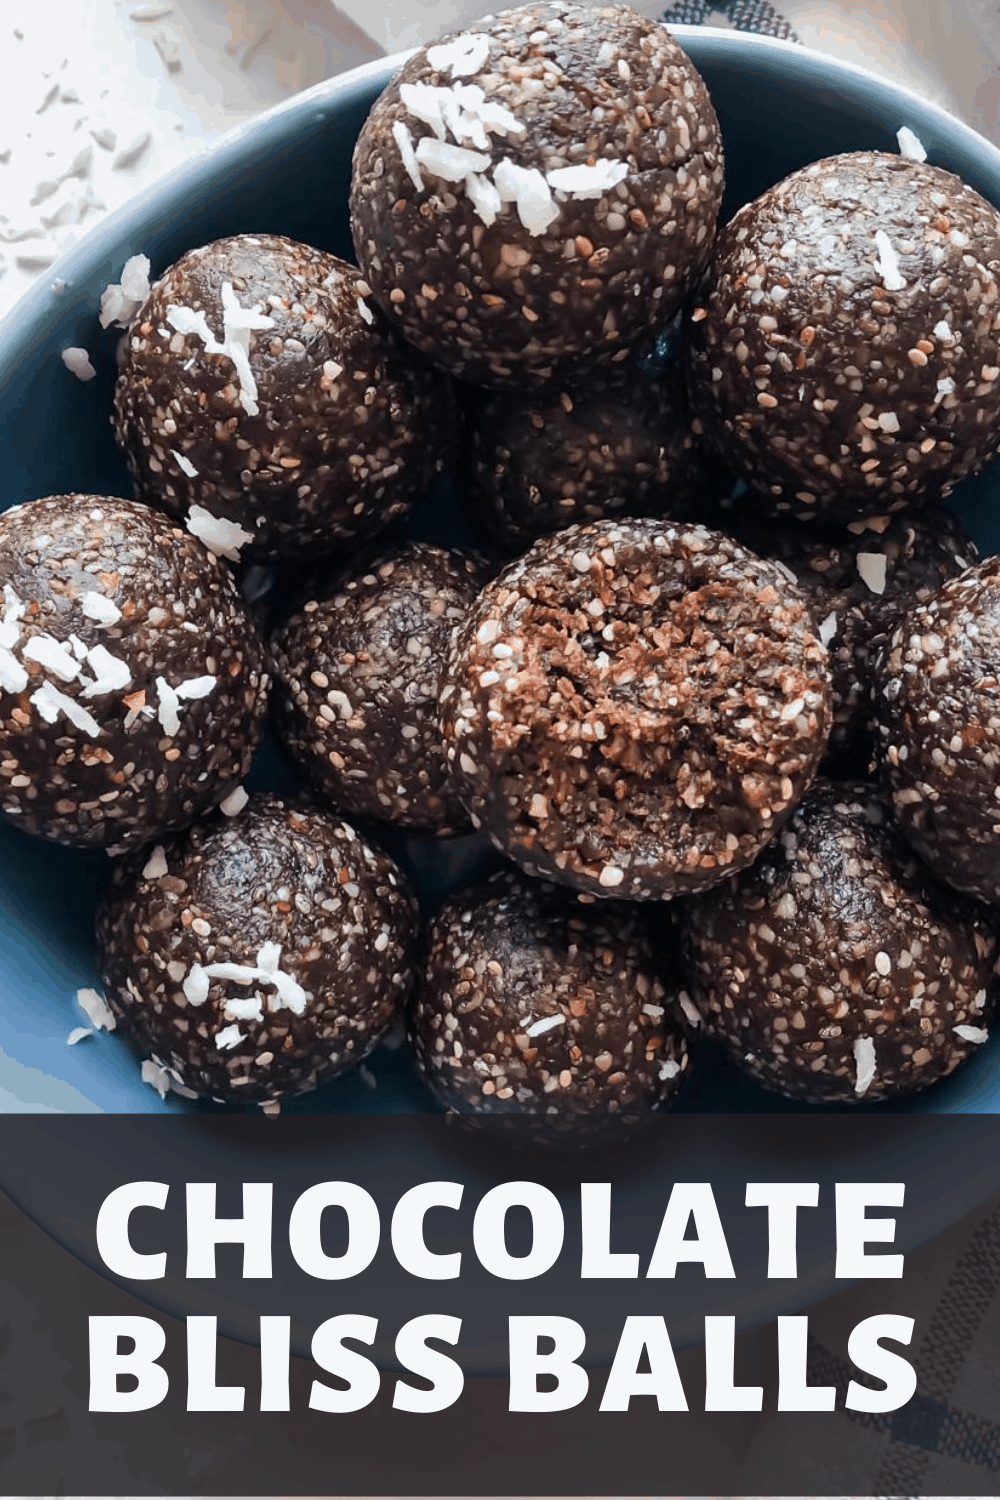 Chocolate Bliss Balls with text overlay